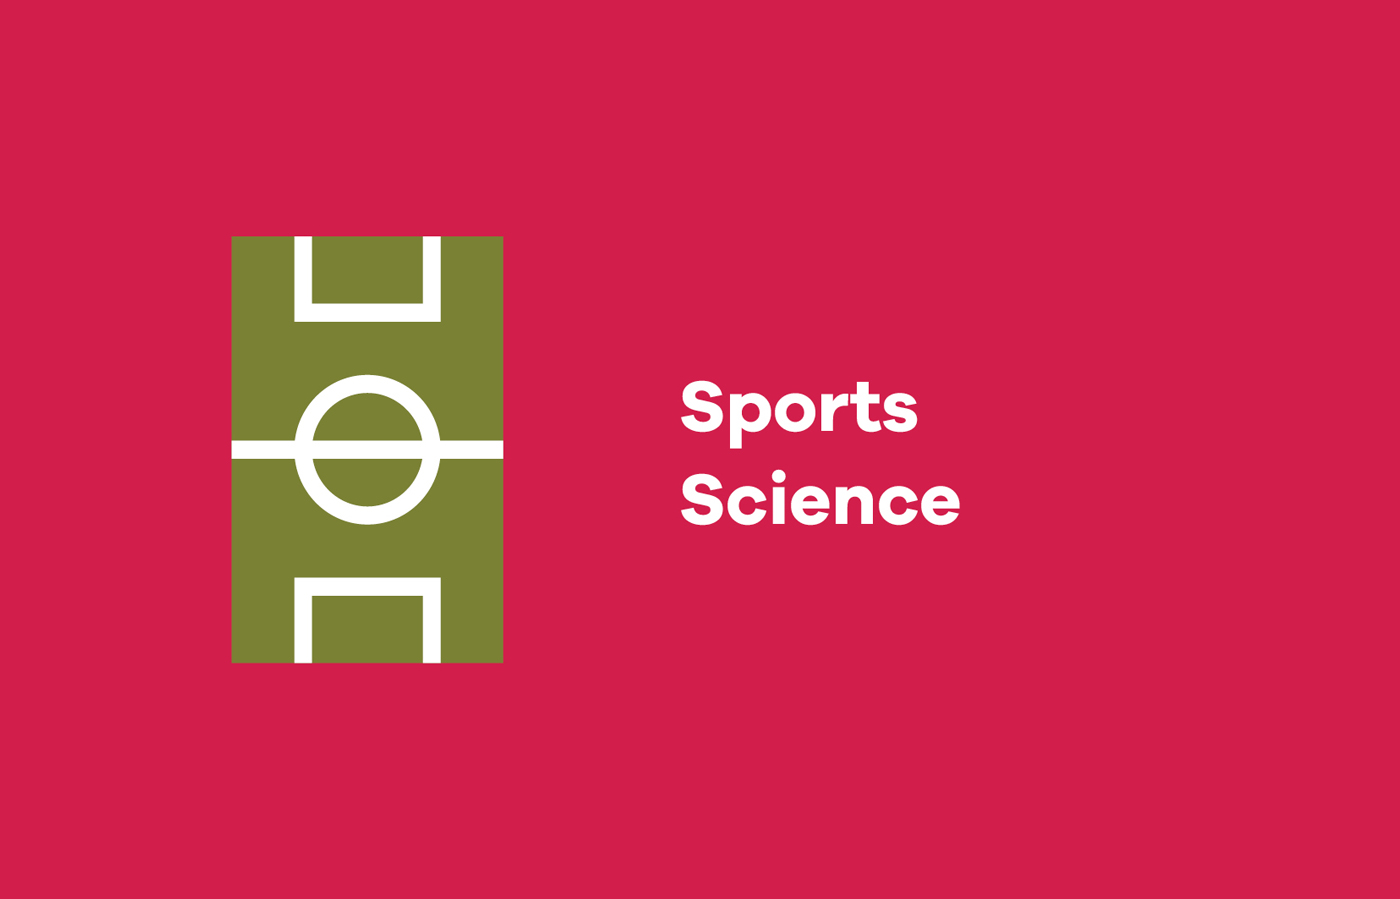 UL Undergrad iconography for sports science